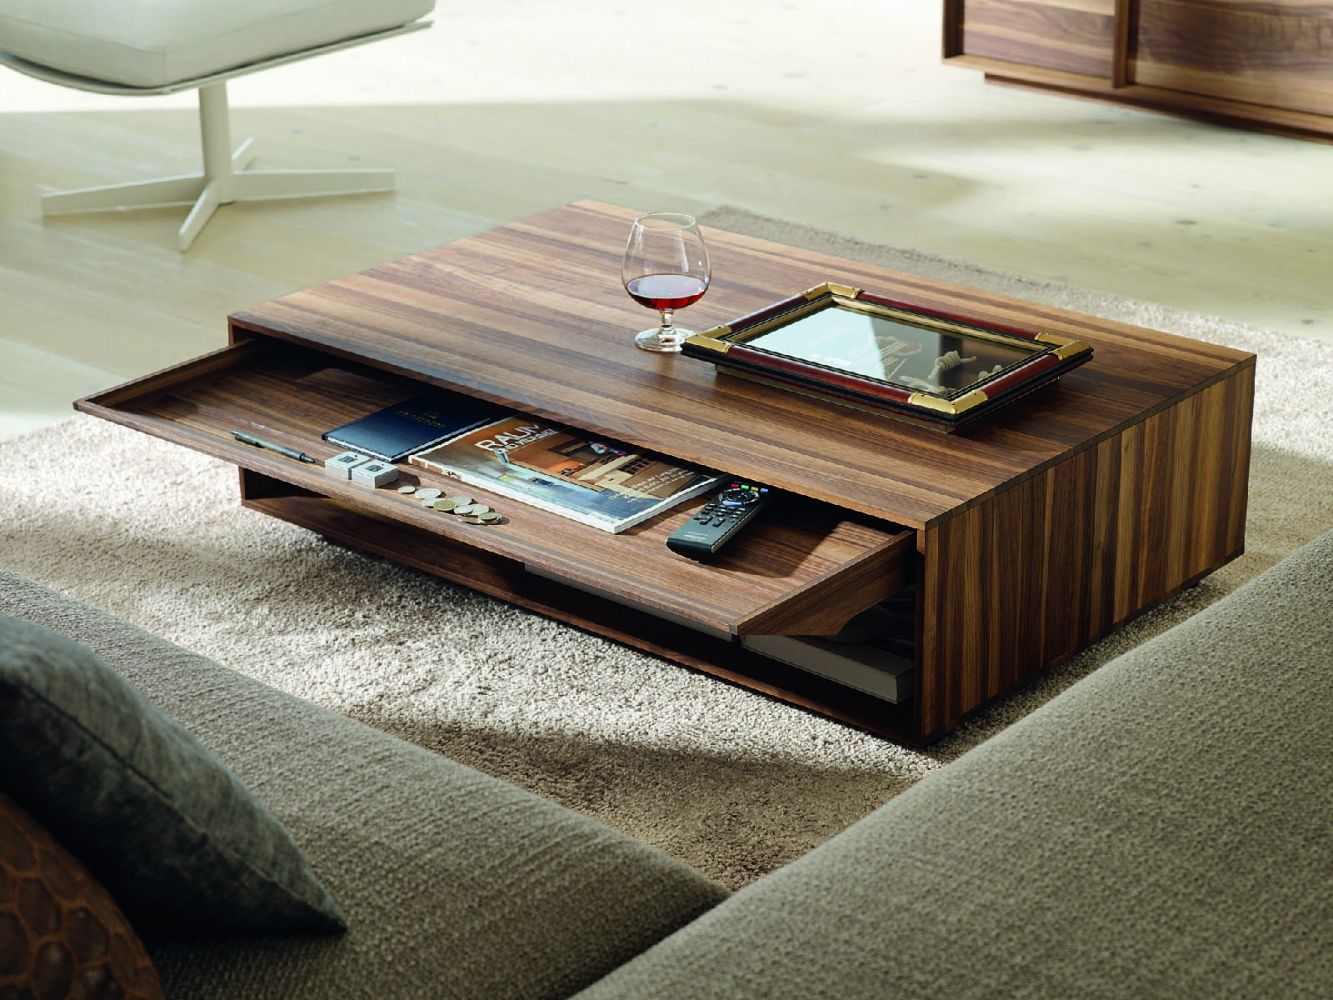 REK ~ A Smart (and Slick) Coffee Table That Can Slide Out Extra Surfaces To  Store More Stuff On!: | Furniture Coffee Table | Pinterest